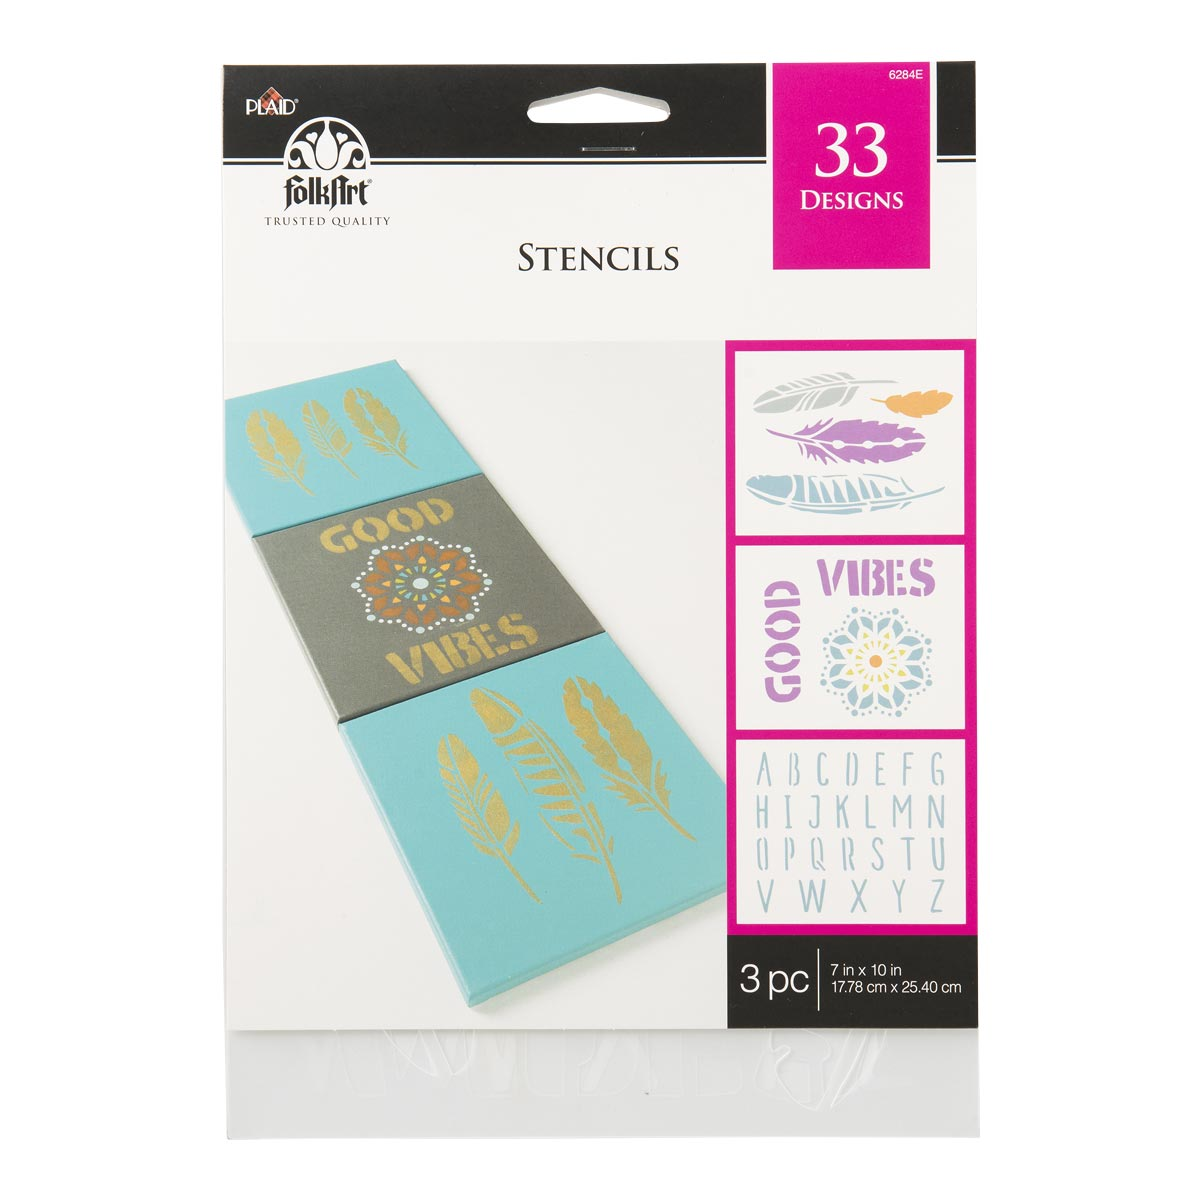 FolkArt ® Stencil Value Packs - Bohemian, 7